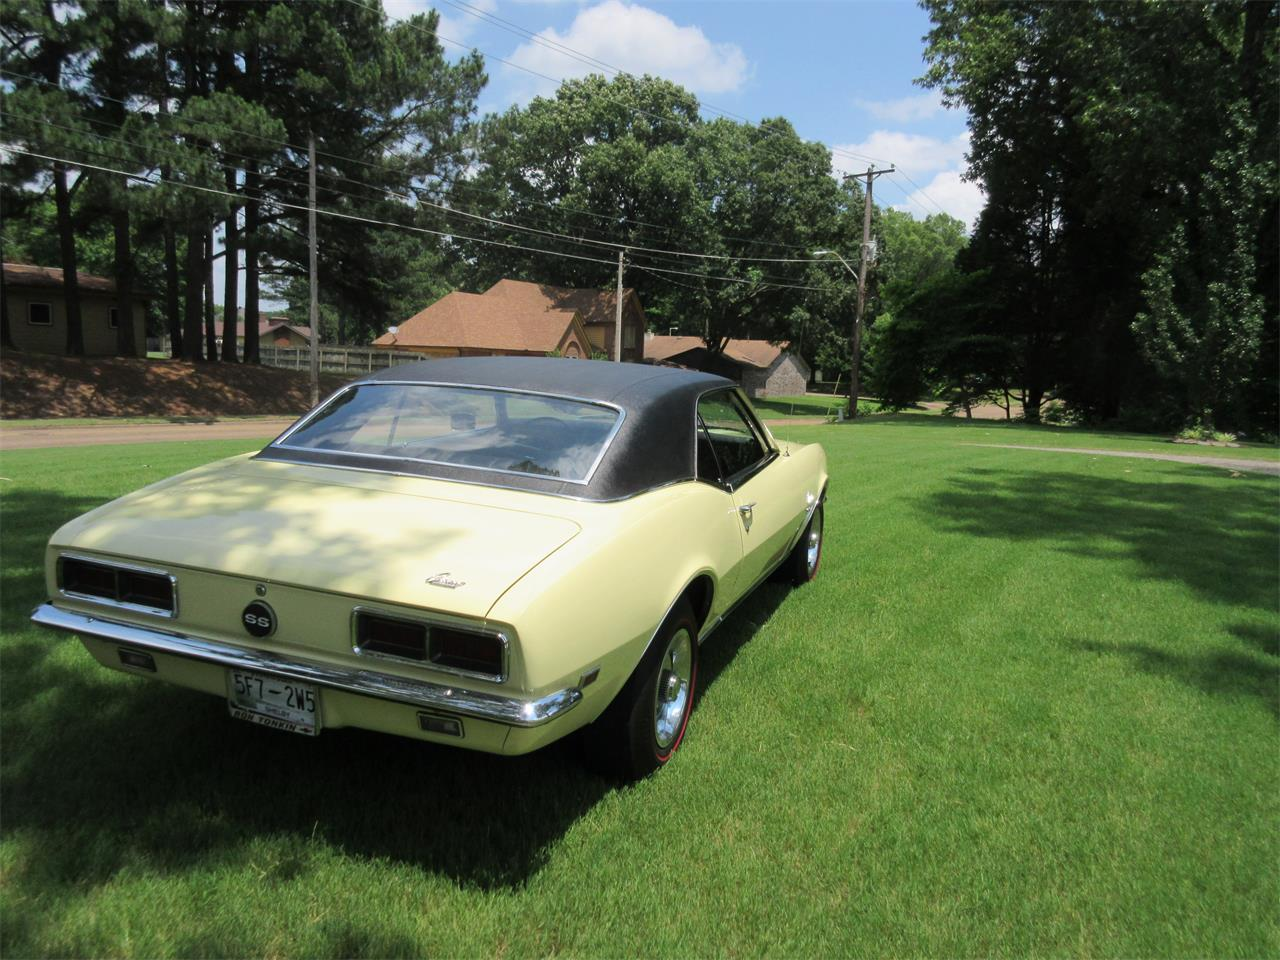 1969 Chevrolet Camaro RS/SS (CC-1236387) for sale in Bartlett, Tennessee